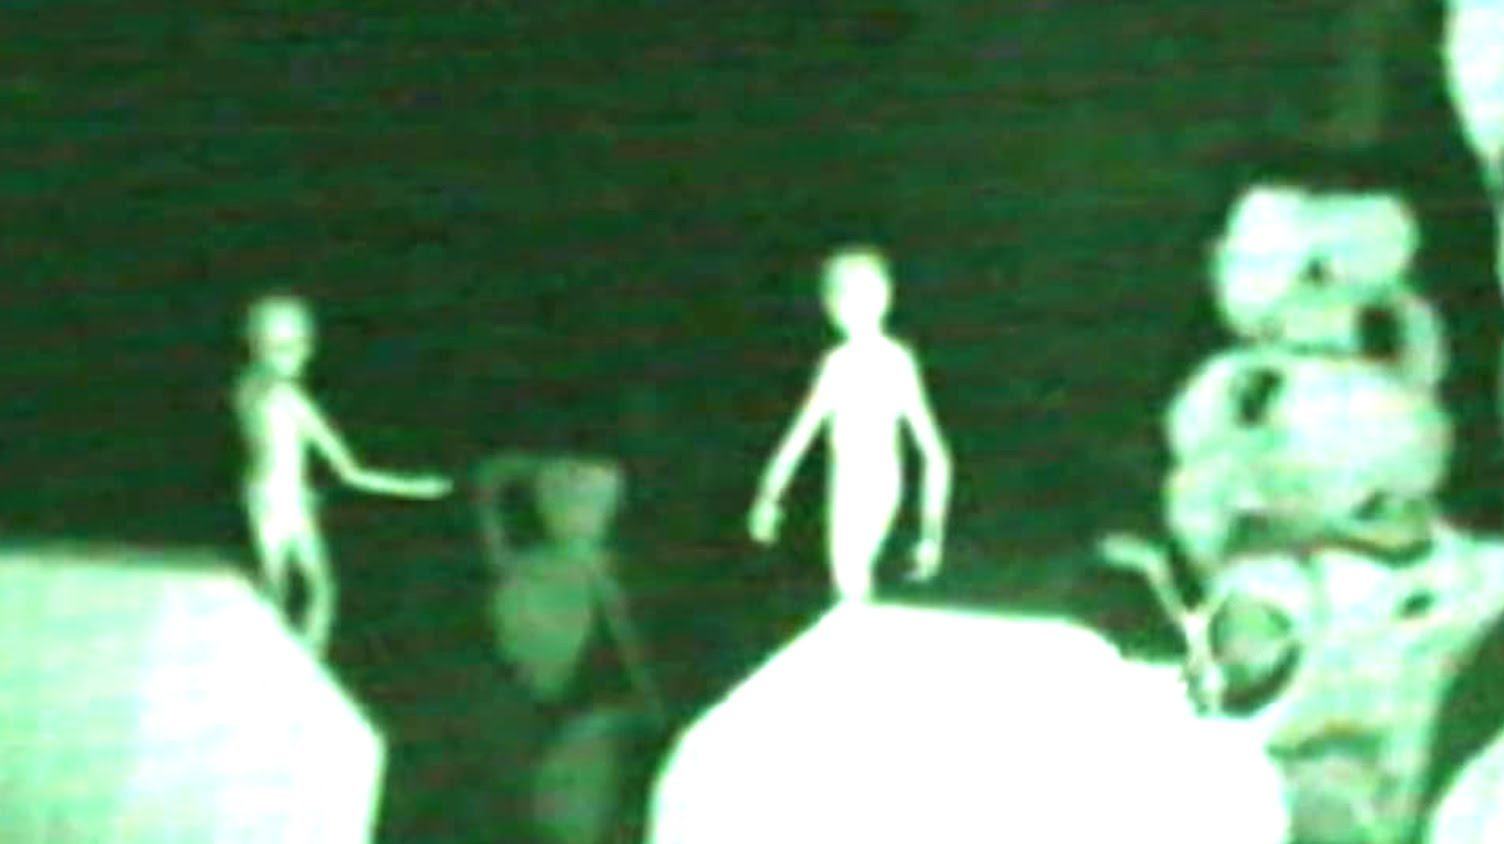 aliens-caught-on-tape-real-evide1 (1)